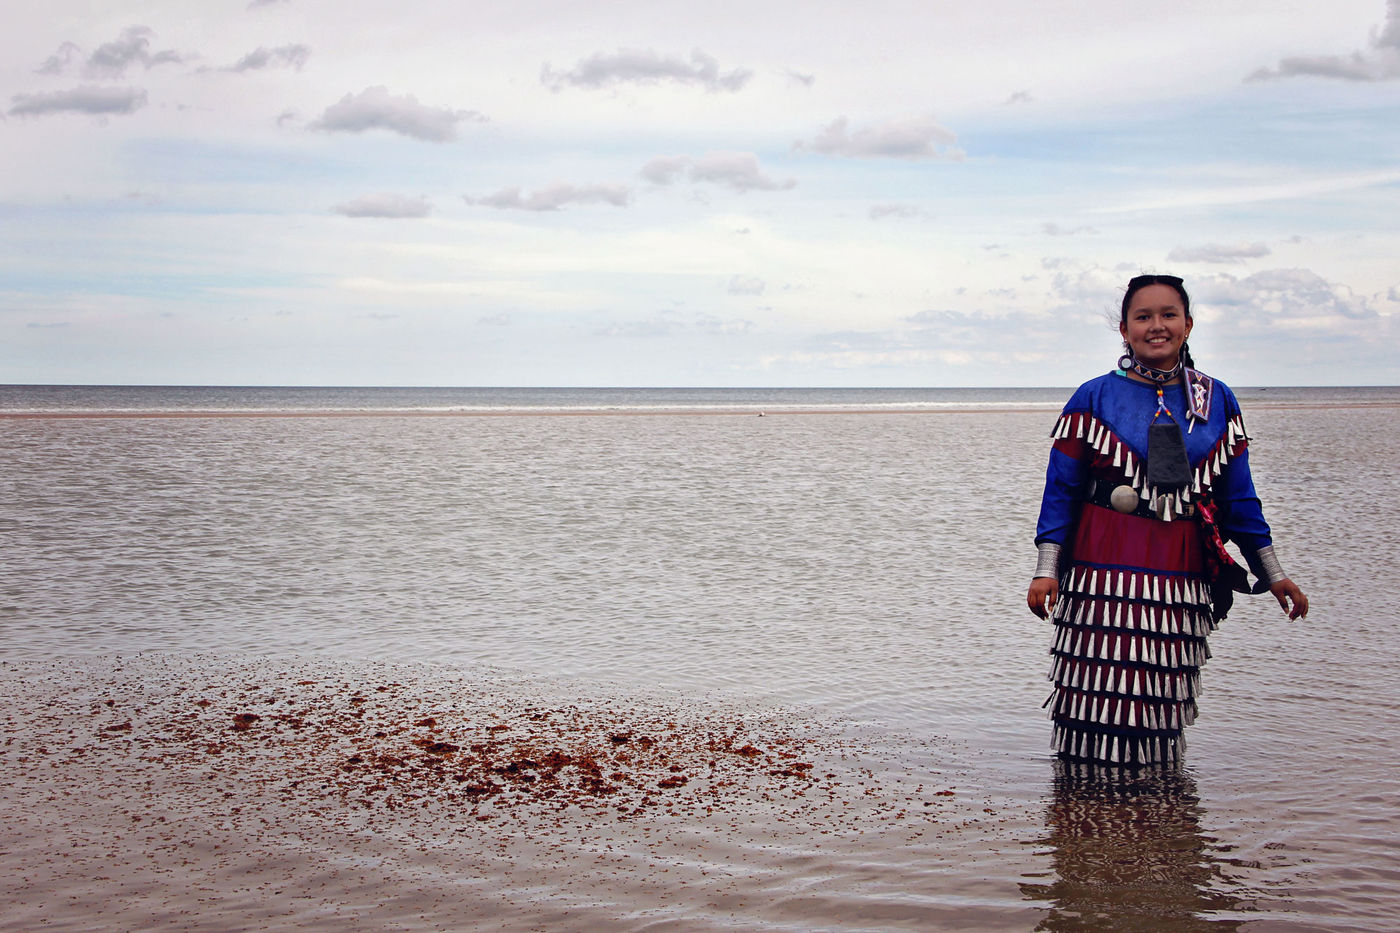 A young woman wearing blue and red ceremonial attire stands in shallow water. A red powdery substance floats on the surface of the water to her left. In the background, the sky is slightly overcast with some blue sky.